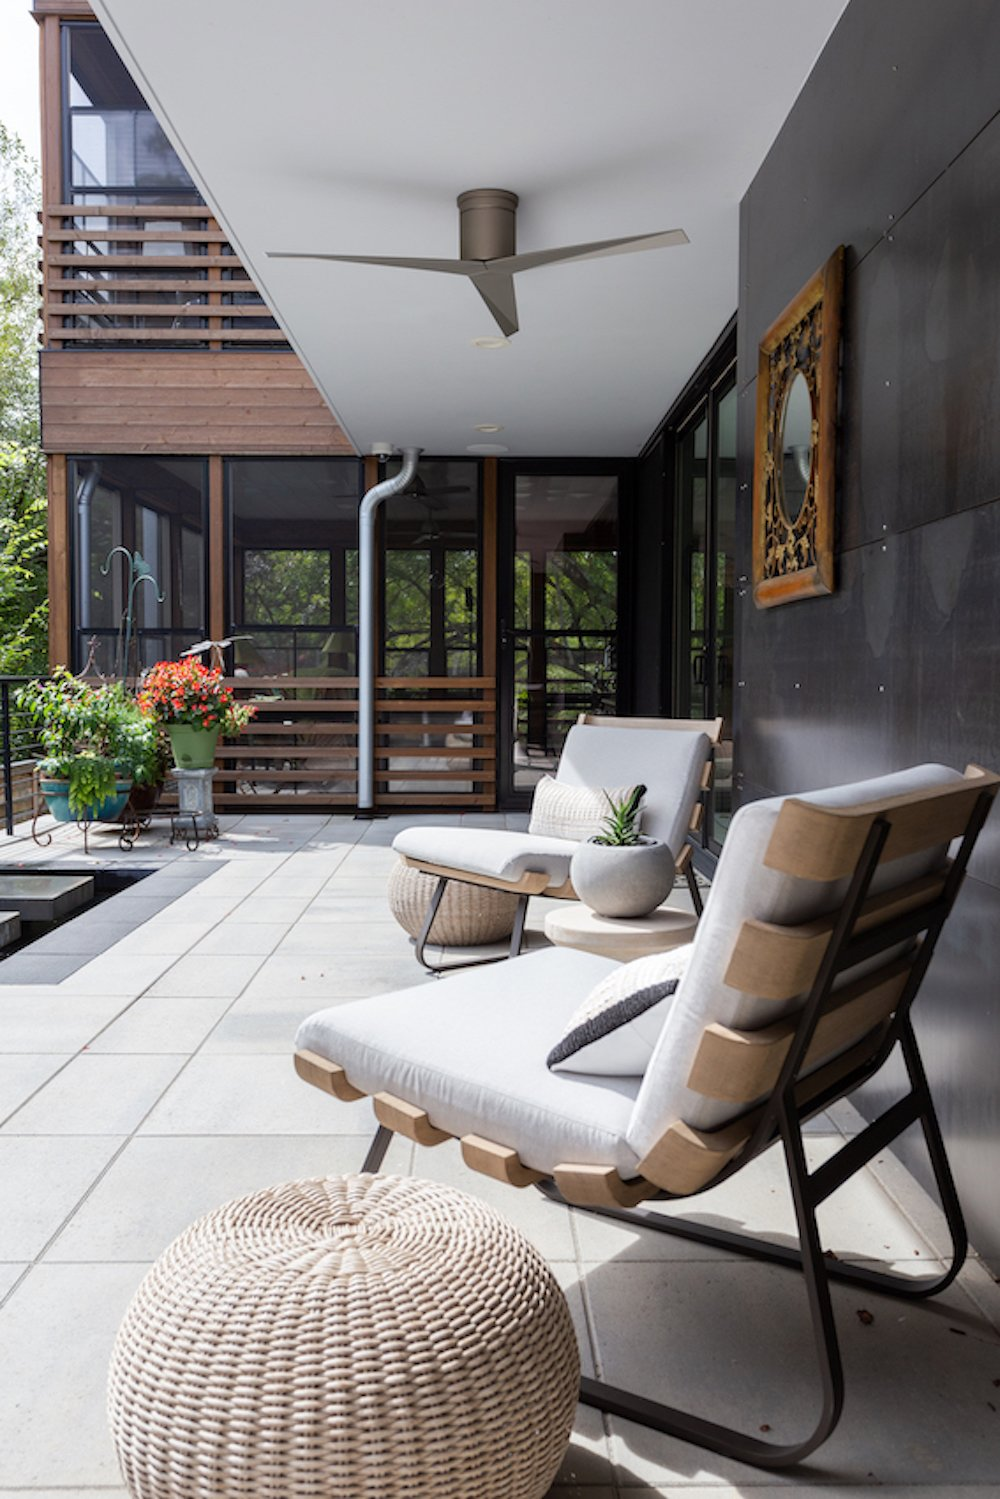 Exterior, House Building Type, Wood Siding Material, Metal Roof Material, Metal Siding Material, and Flat RoofLine The patio's back wall is clad in steel. The screened porches can be seen beyond the patio.  The Thomas Residence